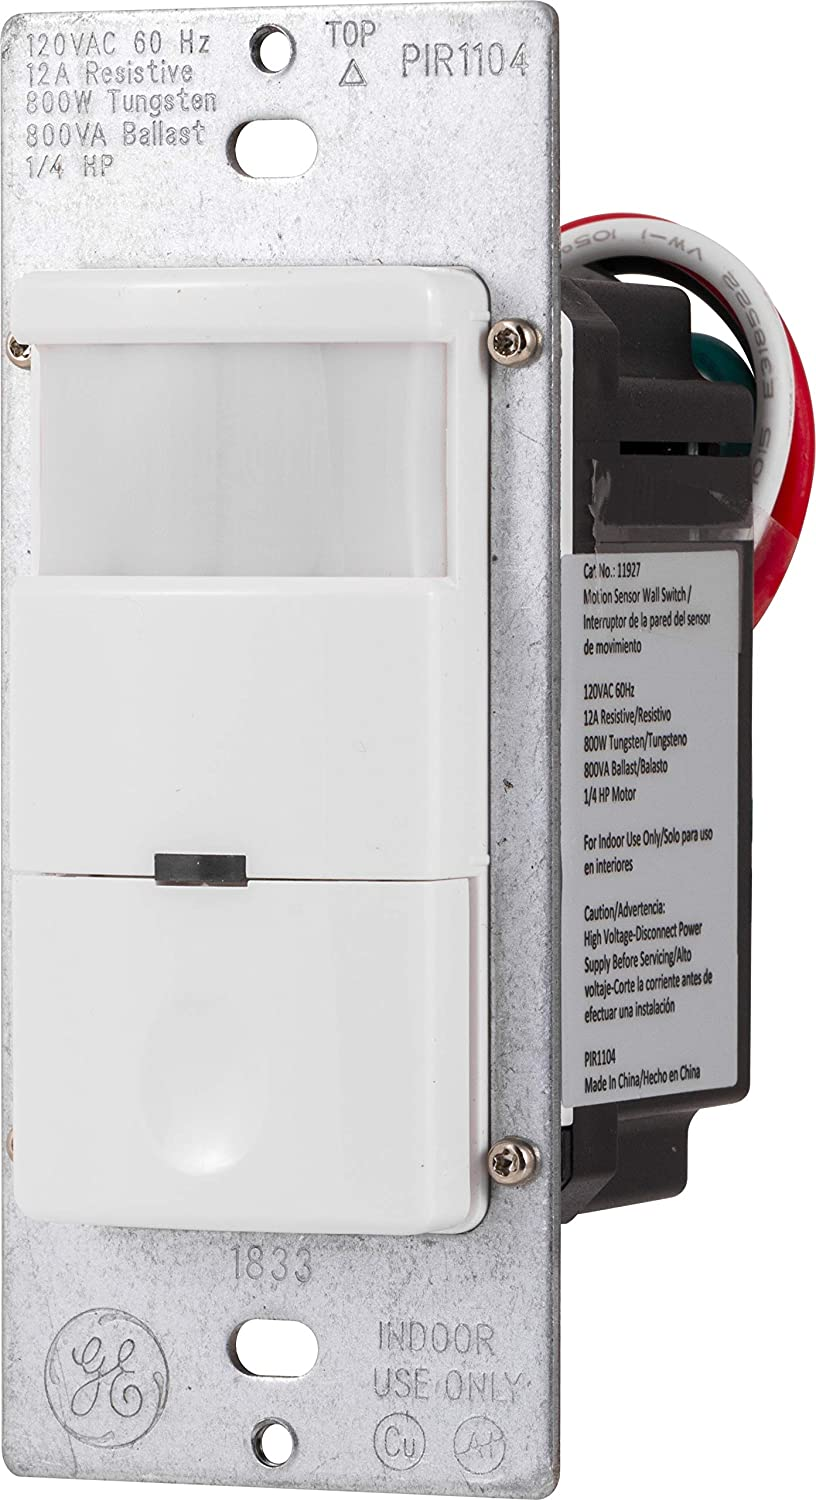 GE UltraPro in-Wall Motion Sensing Switch with Occupancy and Vacancy Options, Single Pole, Automatic/Manual Controls, 150 Degree 30ft.